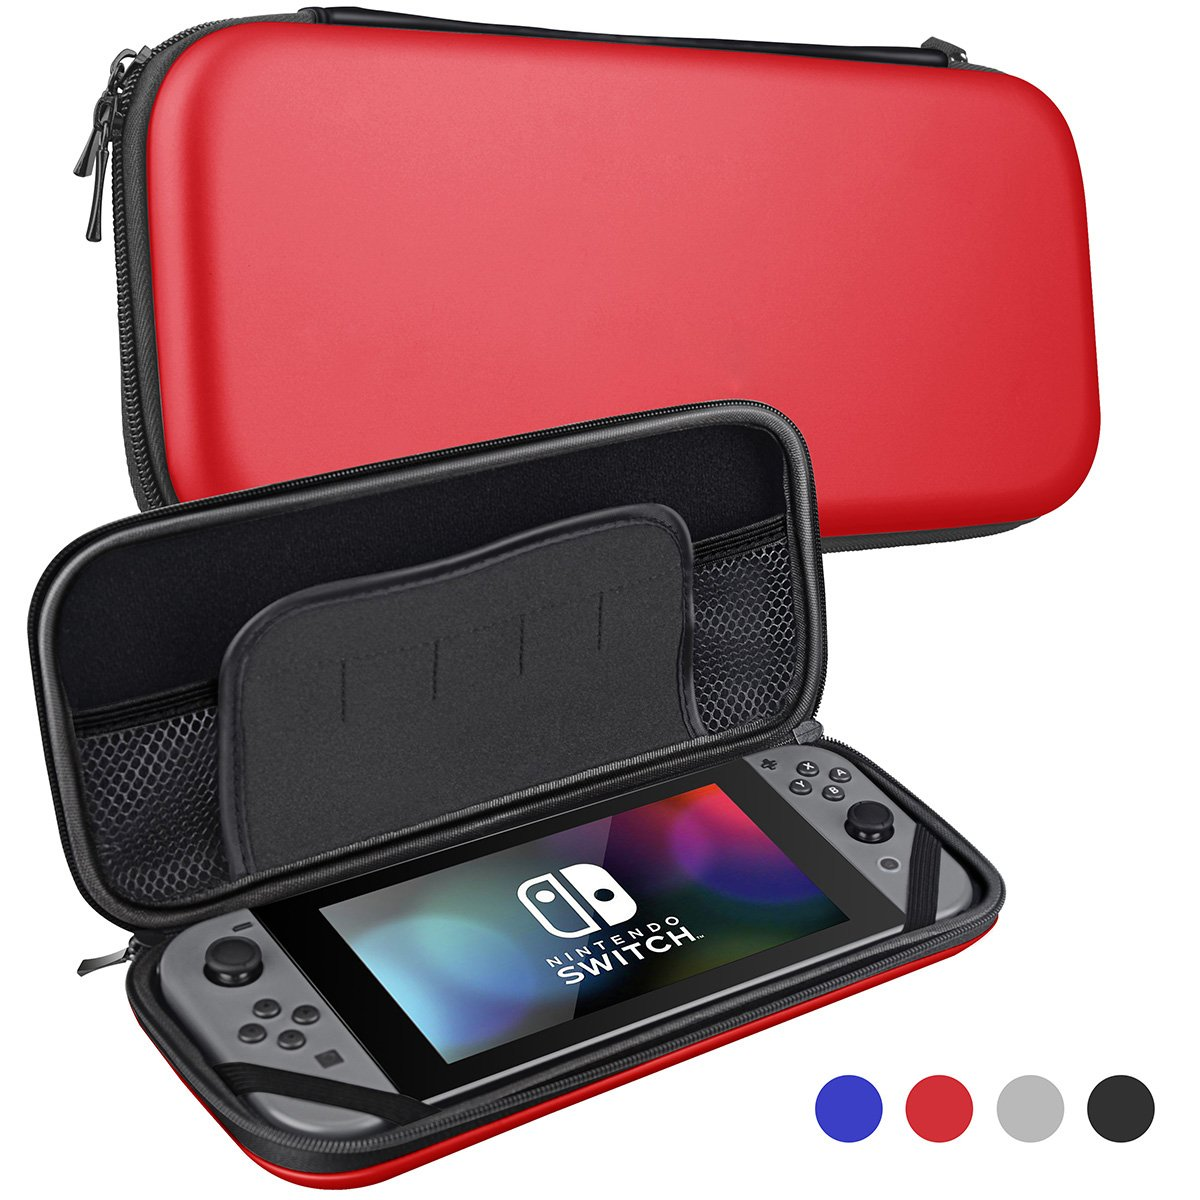 Bepack Case for Nintendo Switch ,Hard Protective Durable Carrying Bag Storage Bag With 5 Game Holder for Nintendo Switch